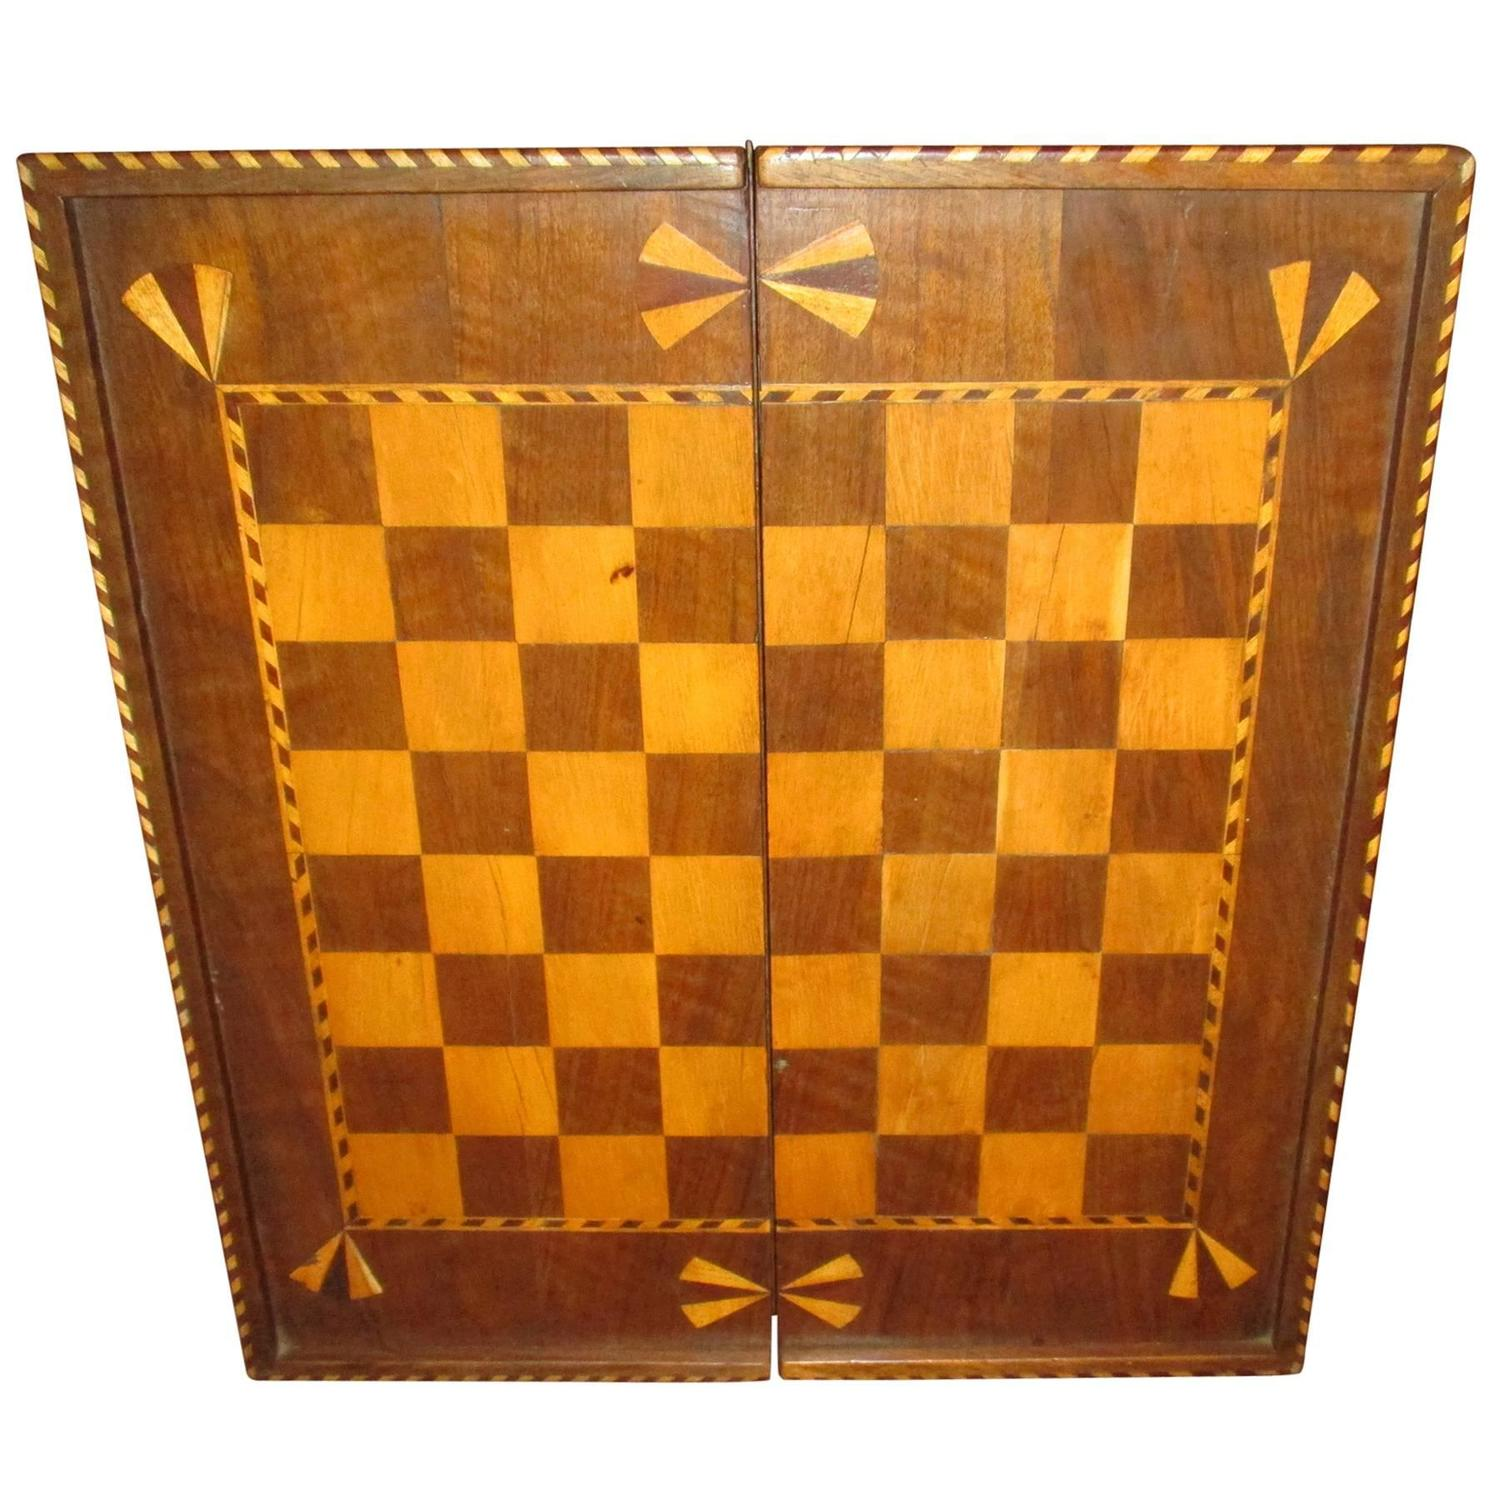 19th Century Inlaid Wood Folding Game Board Chess